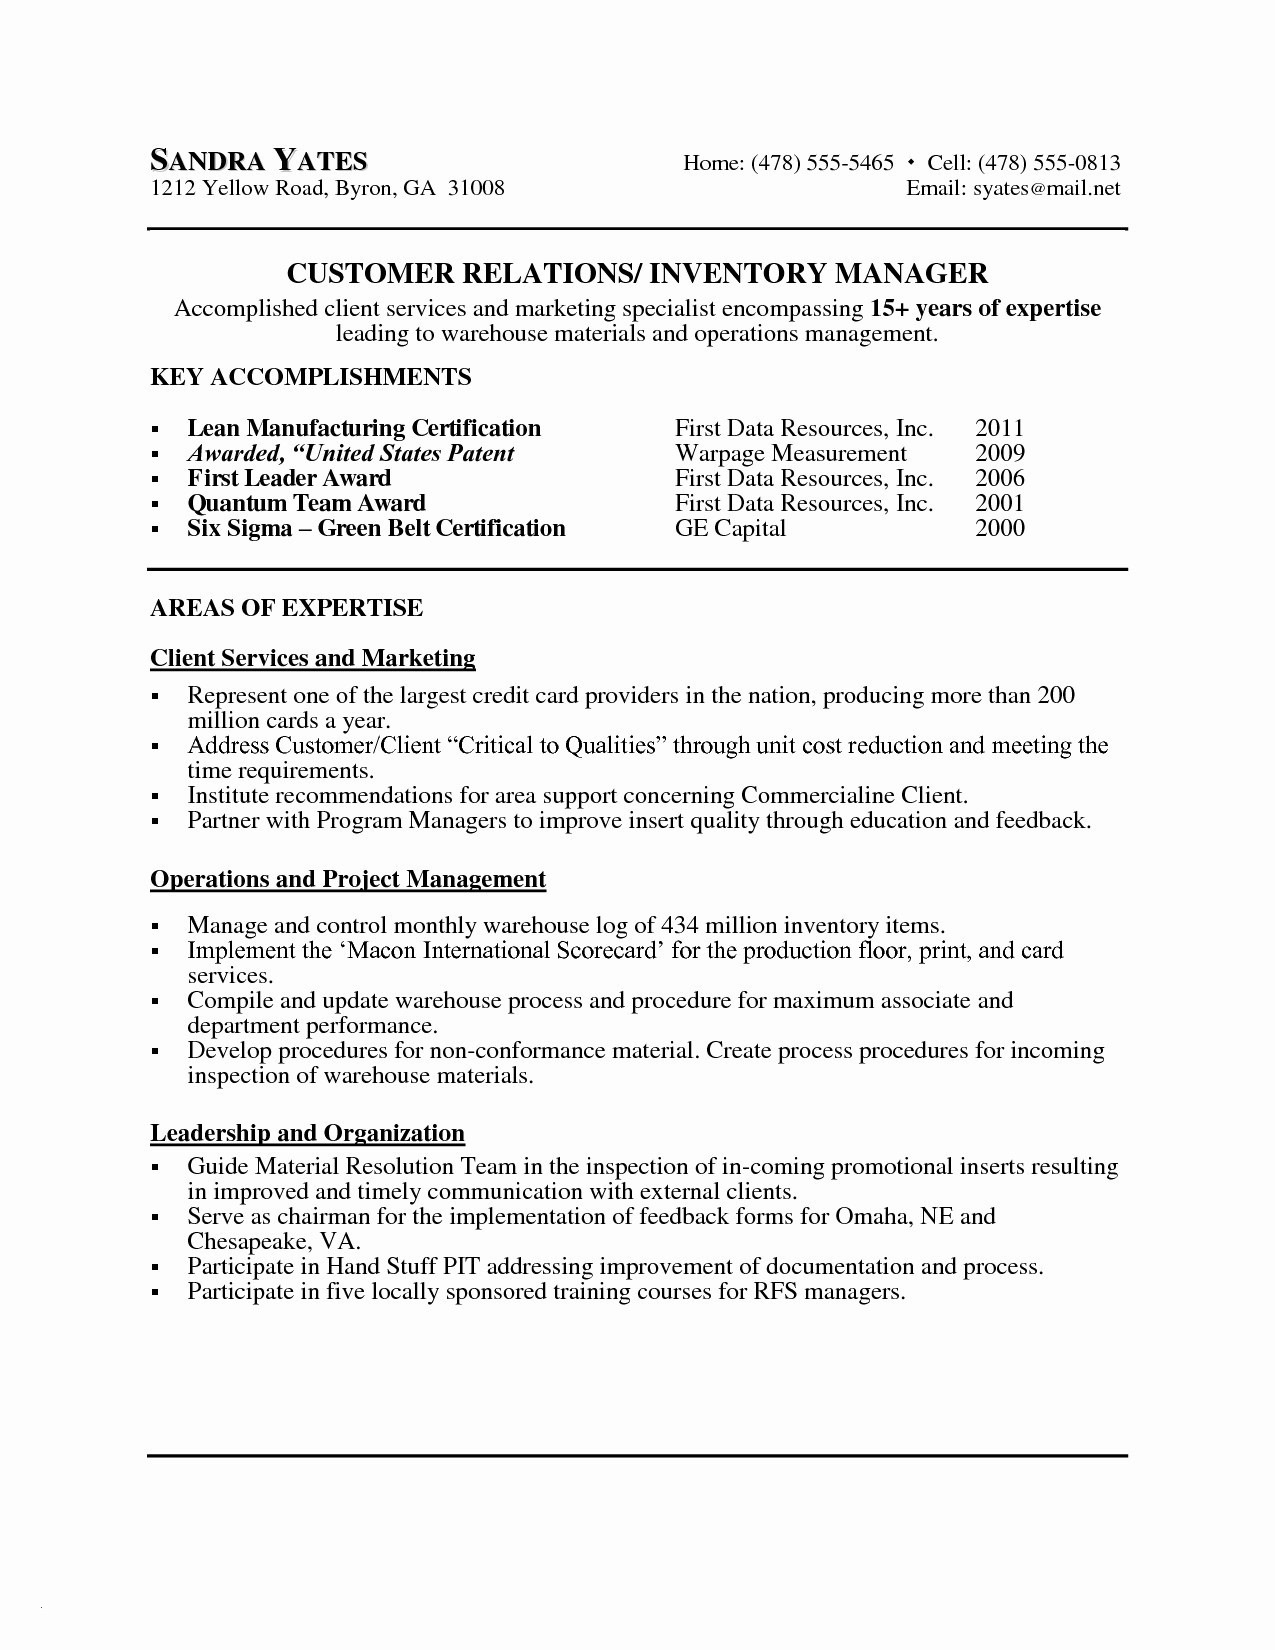 Email Template for Letter Of Recommendation - Best Student Resume Legalsocialmobilitypartnership